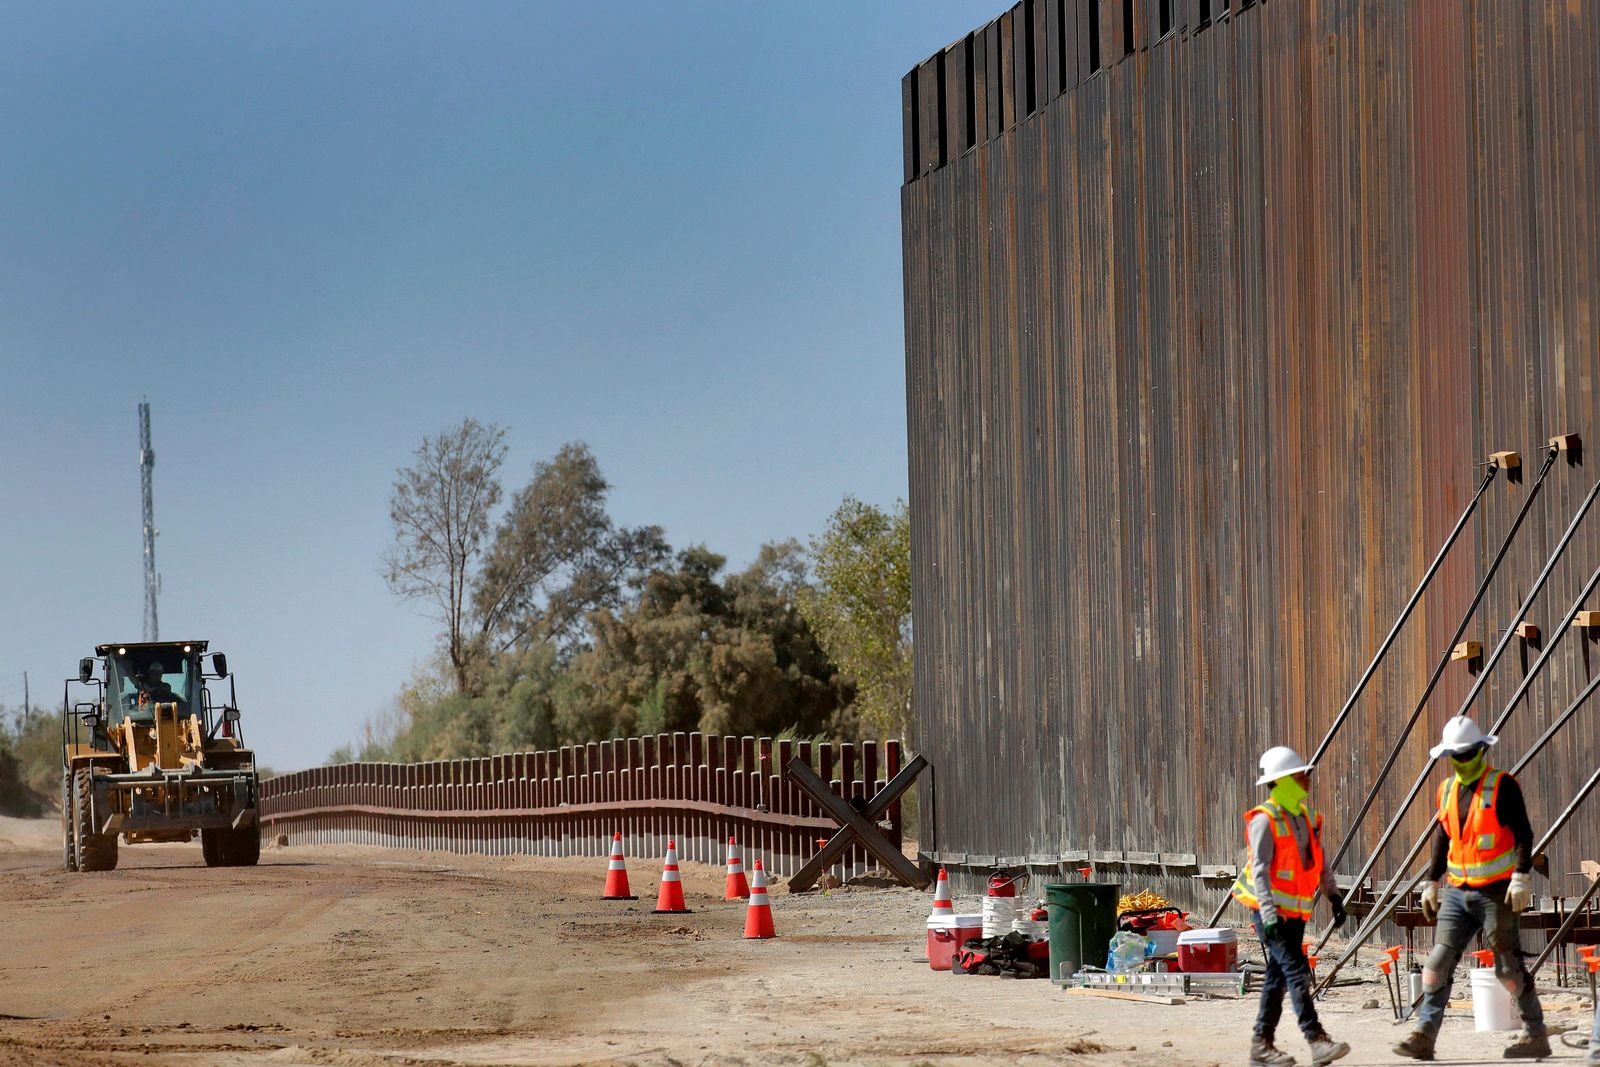 FILE - In this Sept. 10, 2019, file photo, government contractors erect a section of Pentagon-funded border wall along the Colorado River, in Yuma, Ariz. A federal appeals court hears arguments against diverting Pentagon money for border wall construction as time runs out. It says the Trump administration has moved quickly to spend the money after the Supreme Court rejected an emergency appeal to prevent work from starting in July. (AP Photo/Matt York,File)